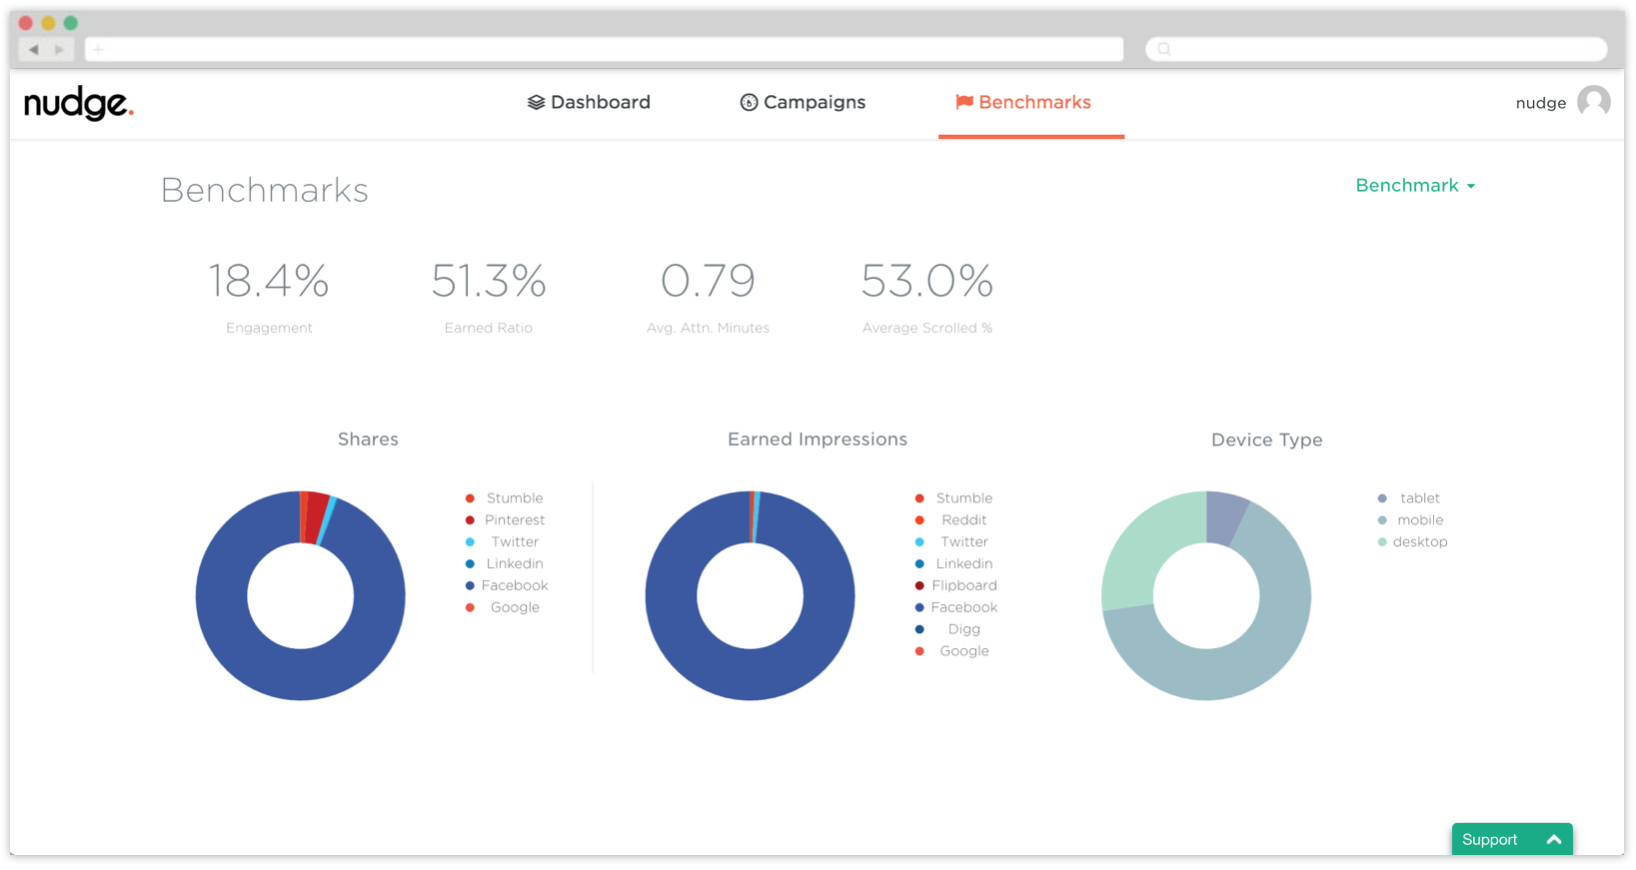 Nudge Network Benchmarks Dashboard